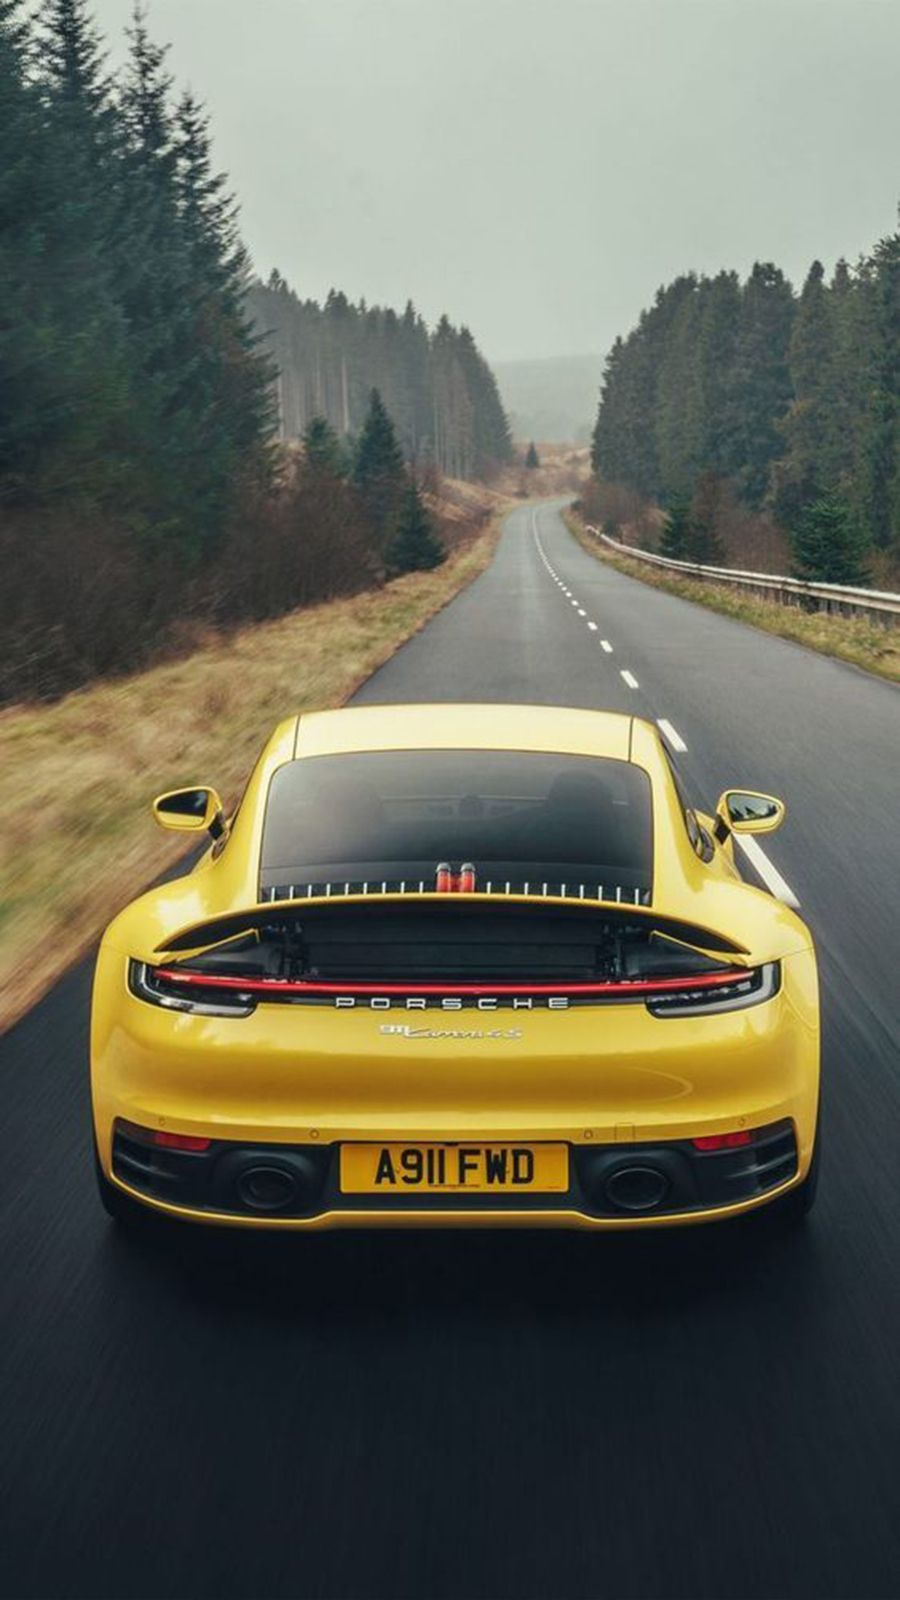 Back View Supercars Hd Wallpapers Free Download In 2020 Porsche 911 Carrera 4s 911 Carrera 4s Porsche 911 Carrera